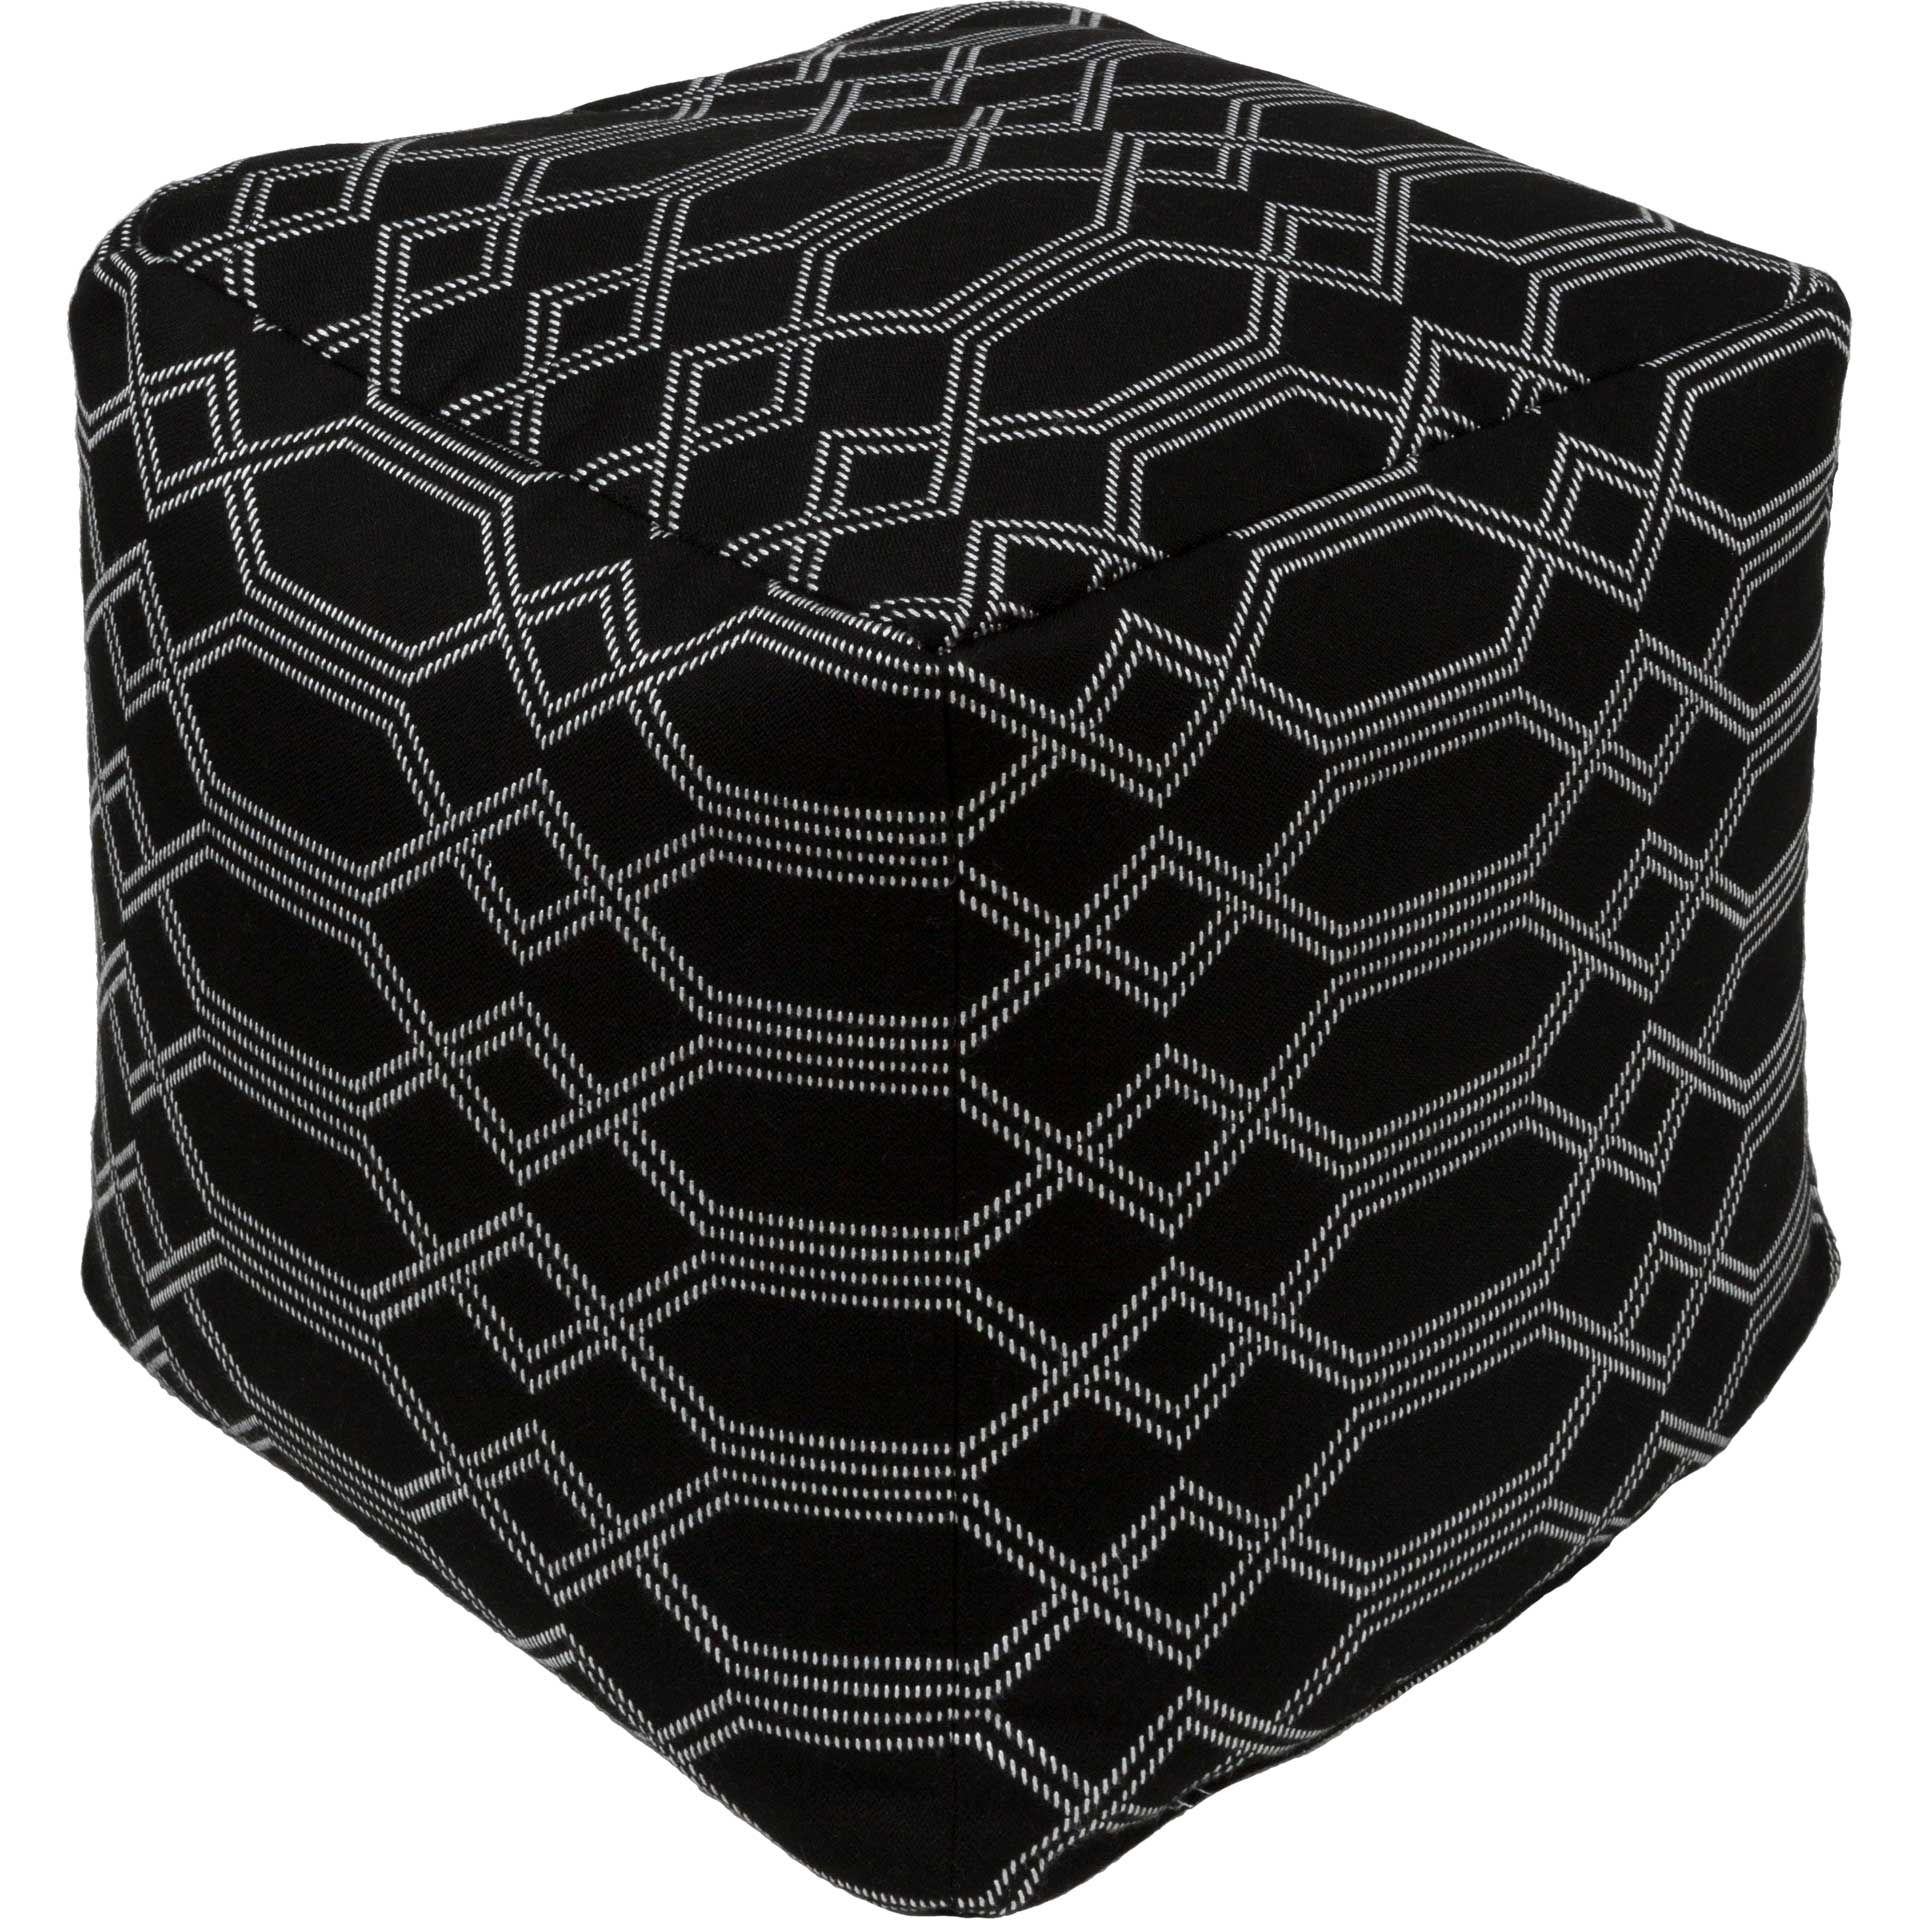 Crystal Pouf Black/Ivory